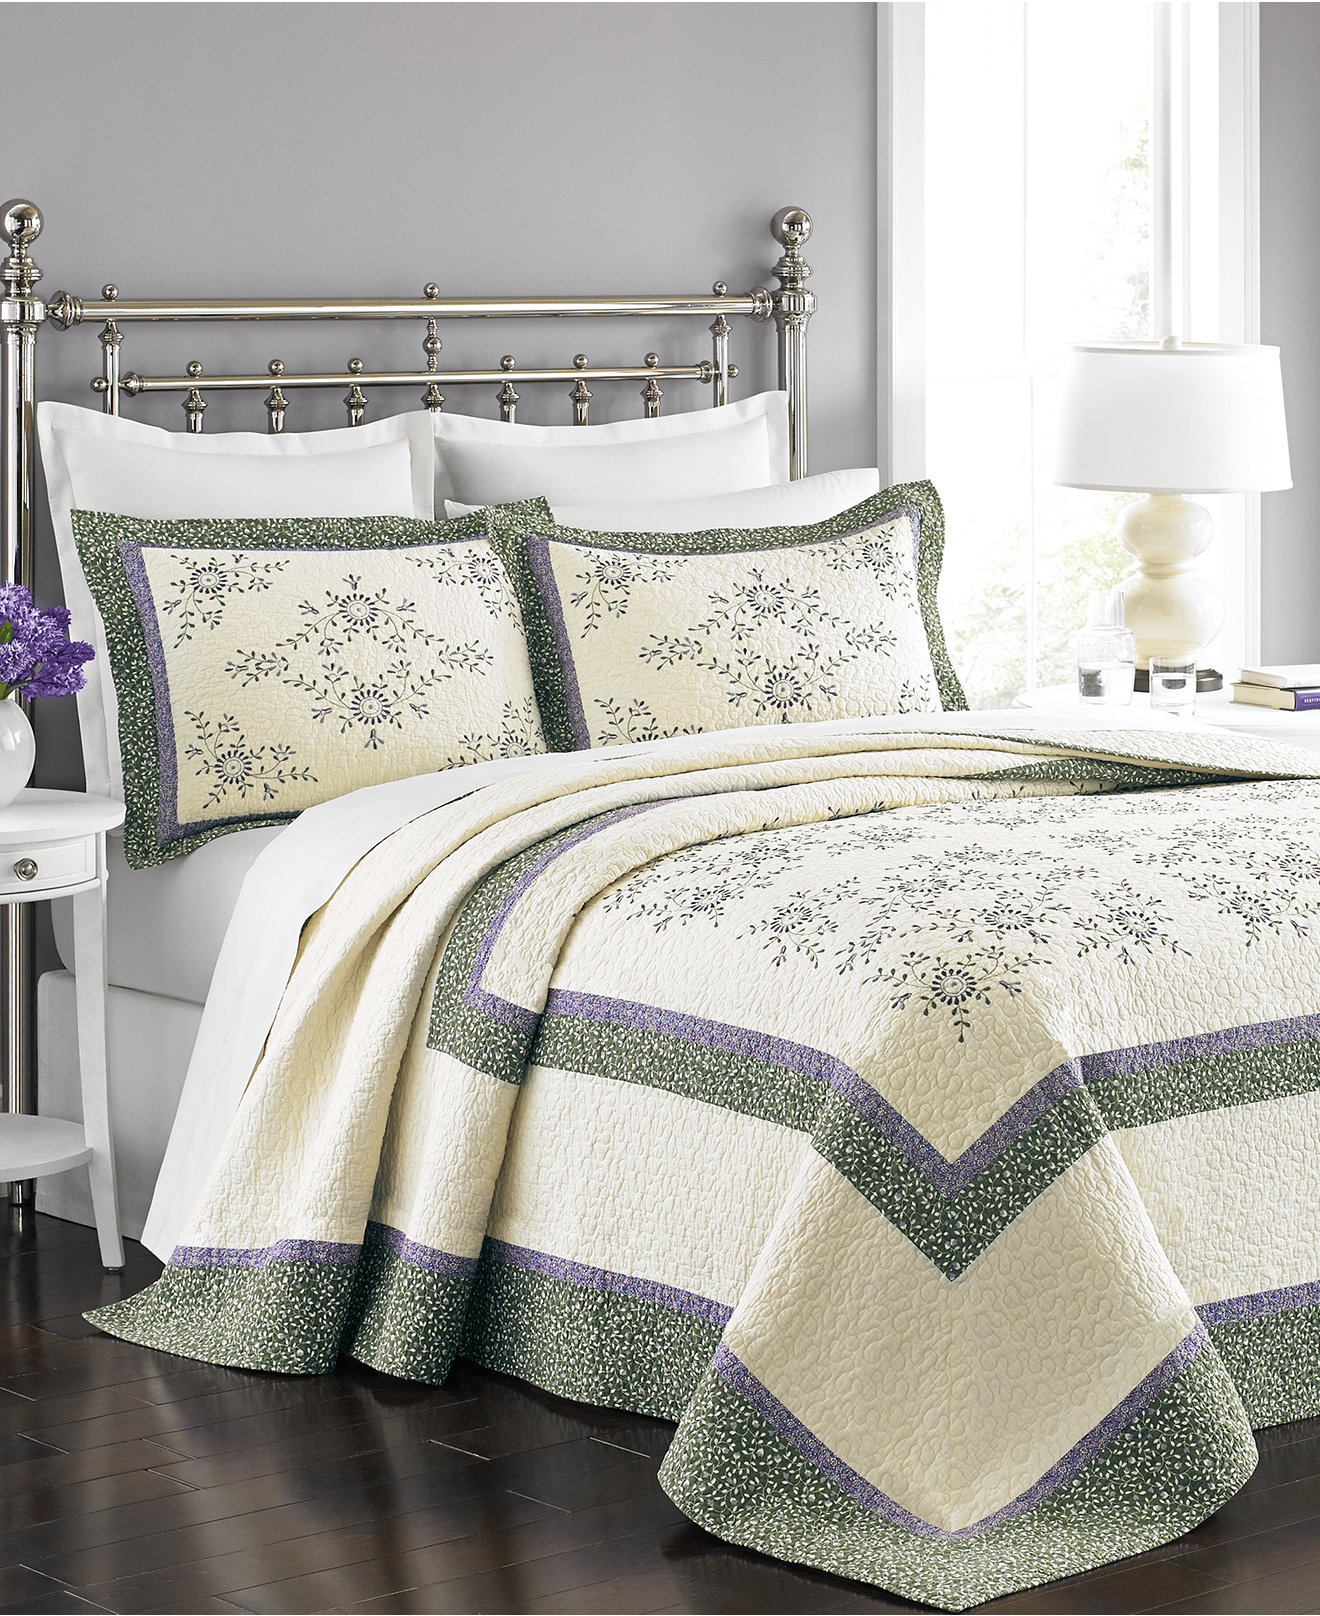 Belk Bedding | Queen Bedspreads | Purple Bedspread Queen